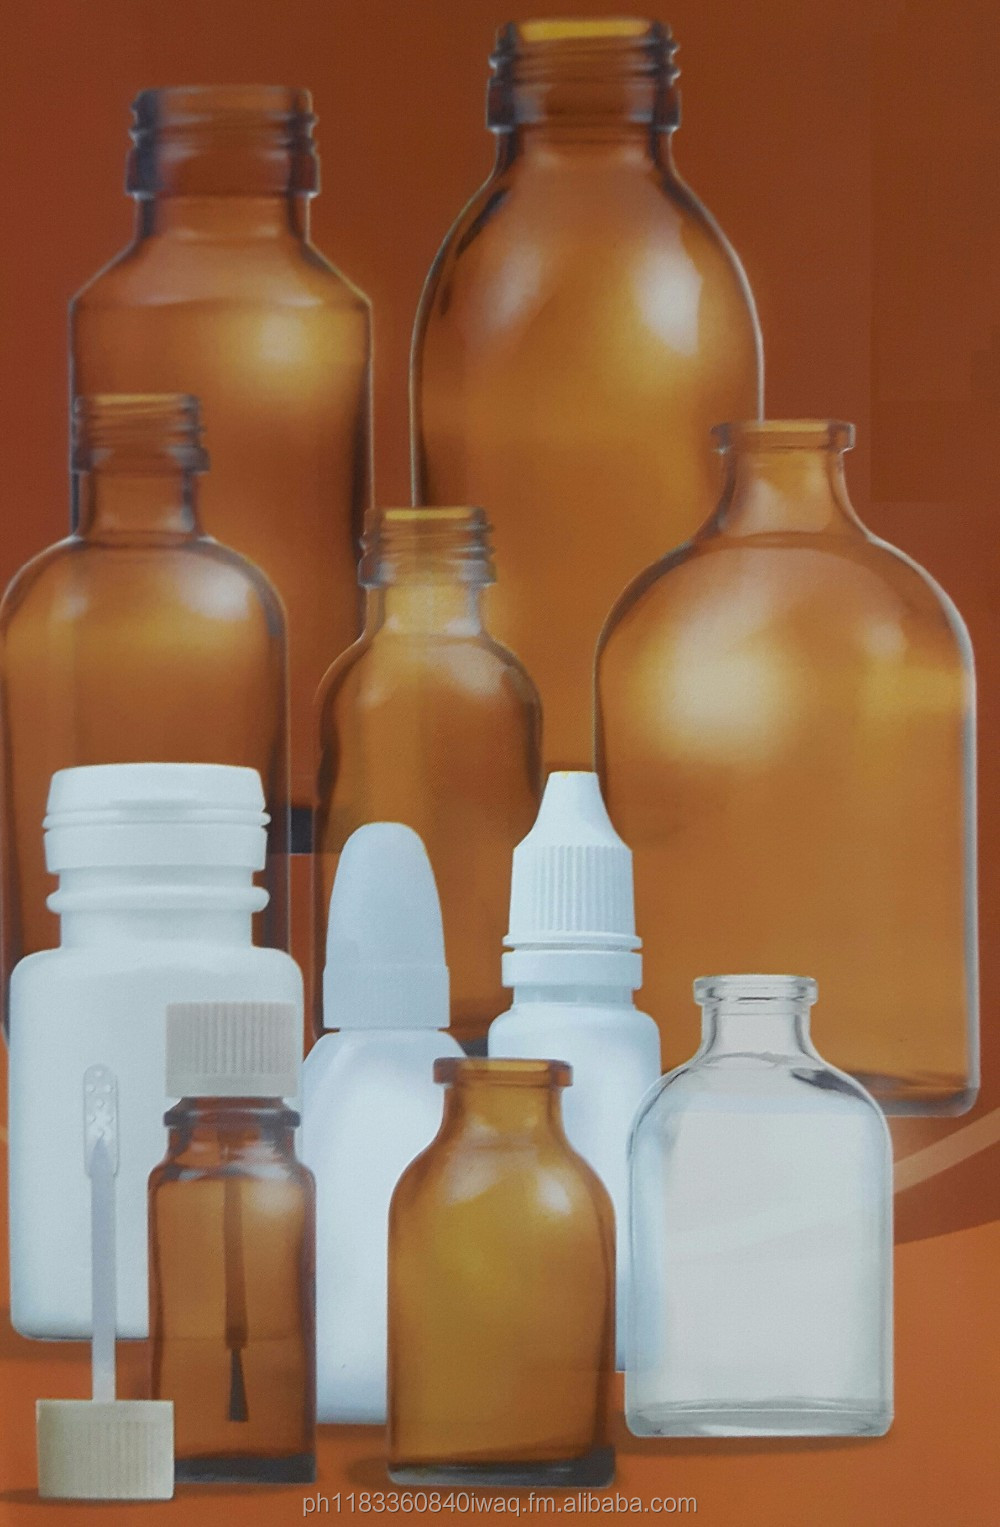 Pharmaceutical and cosmetic packaging products